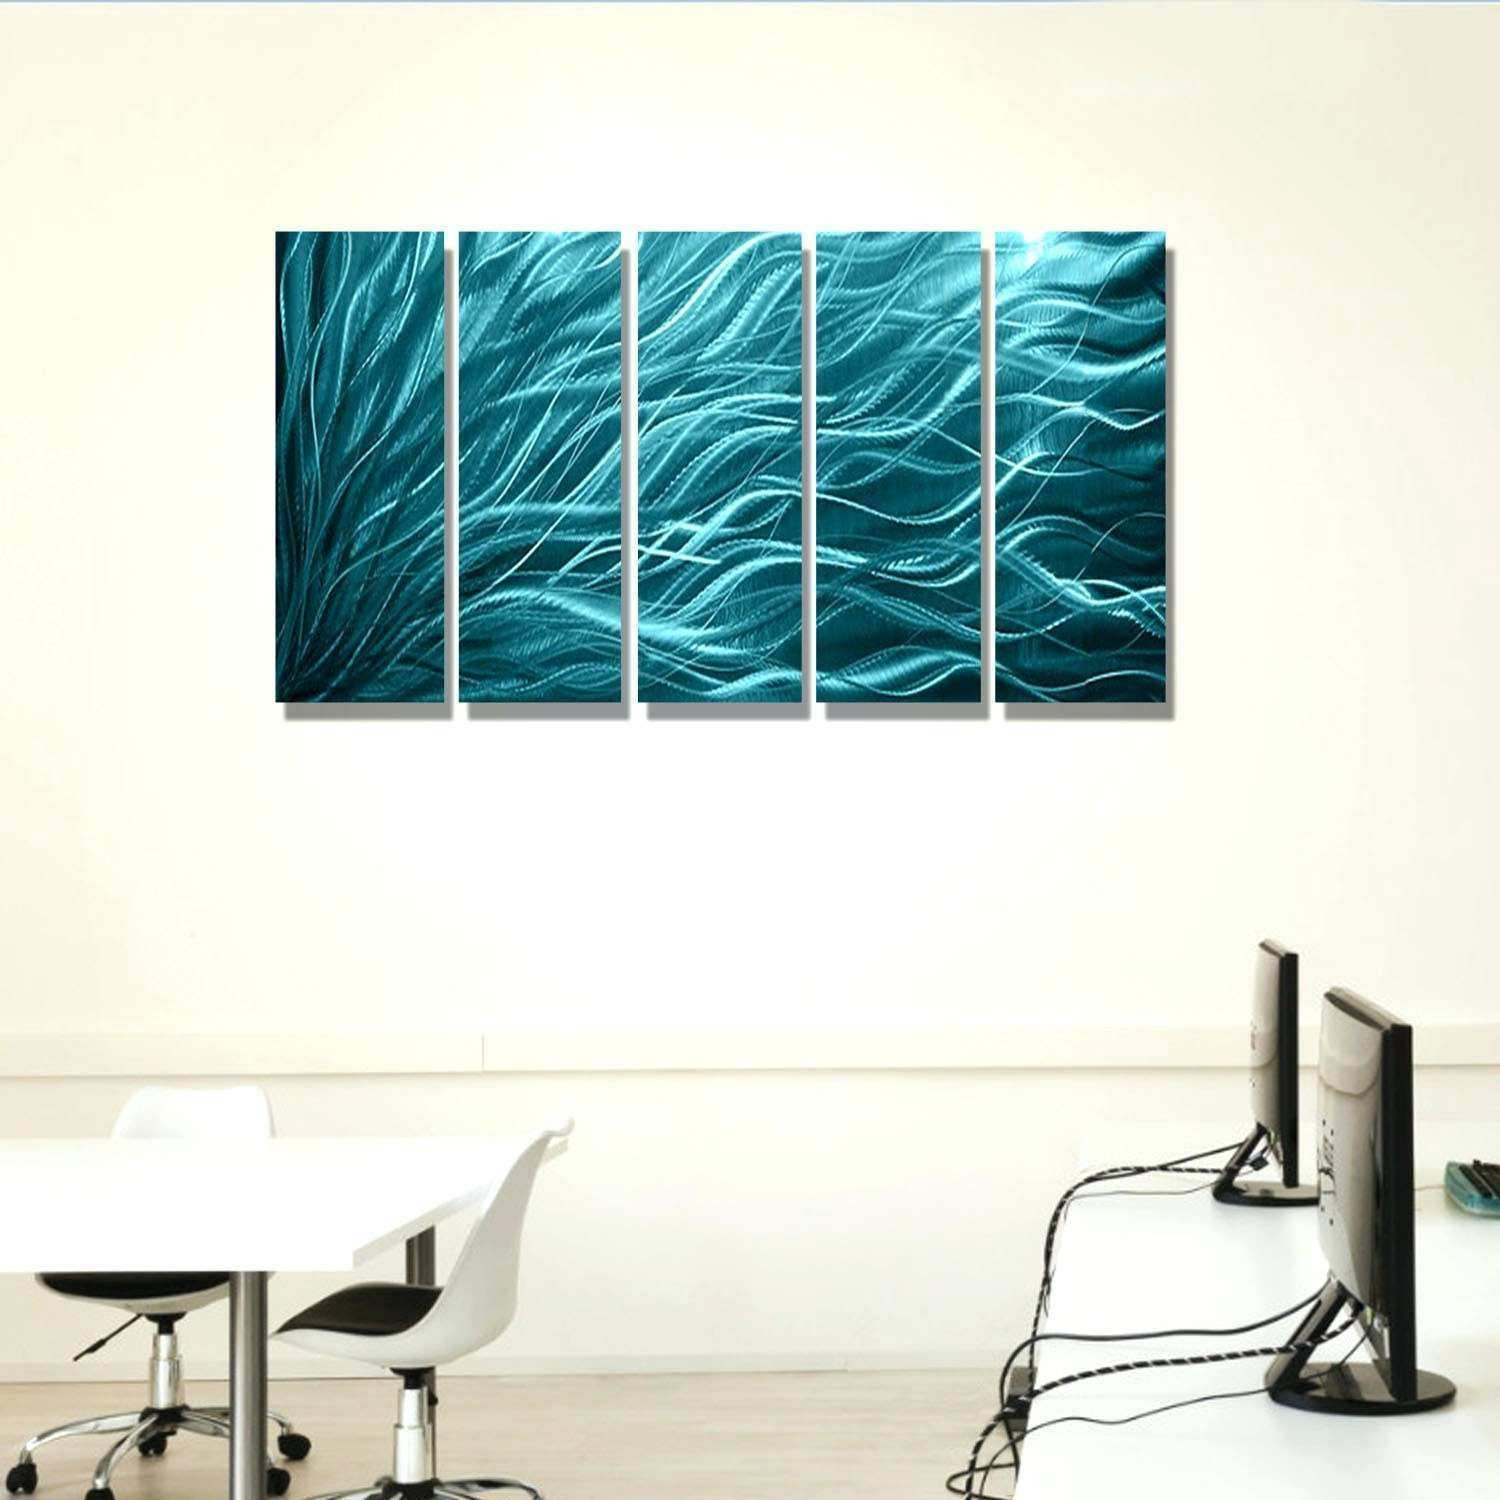 33 New Wall Picture Collage Ideas Image